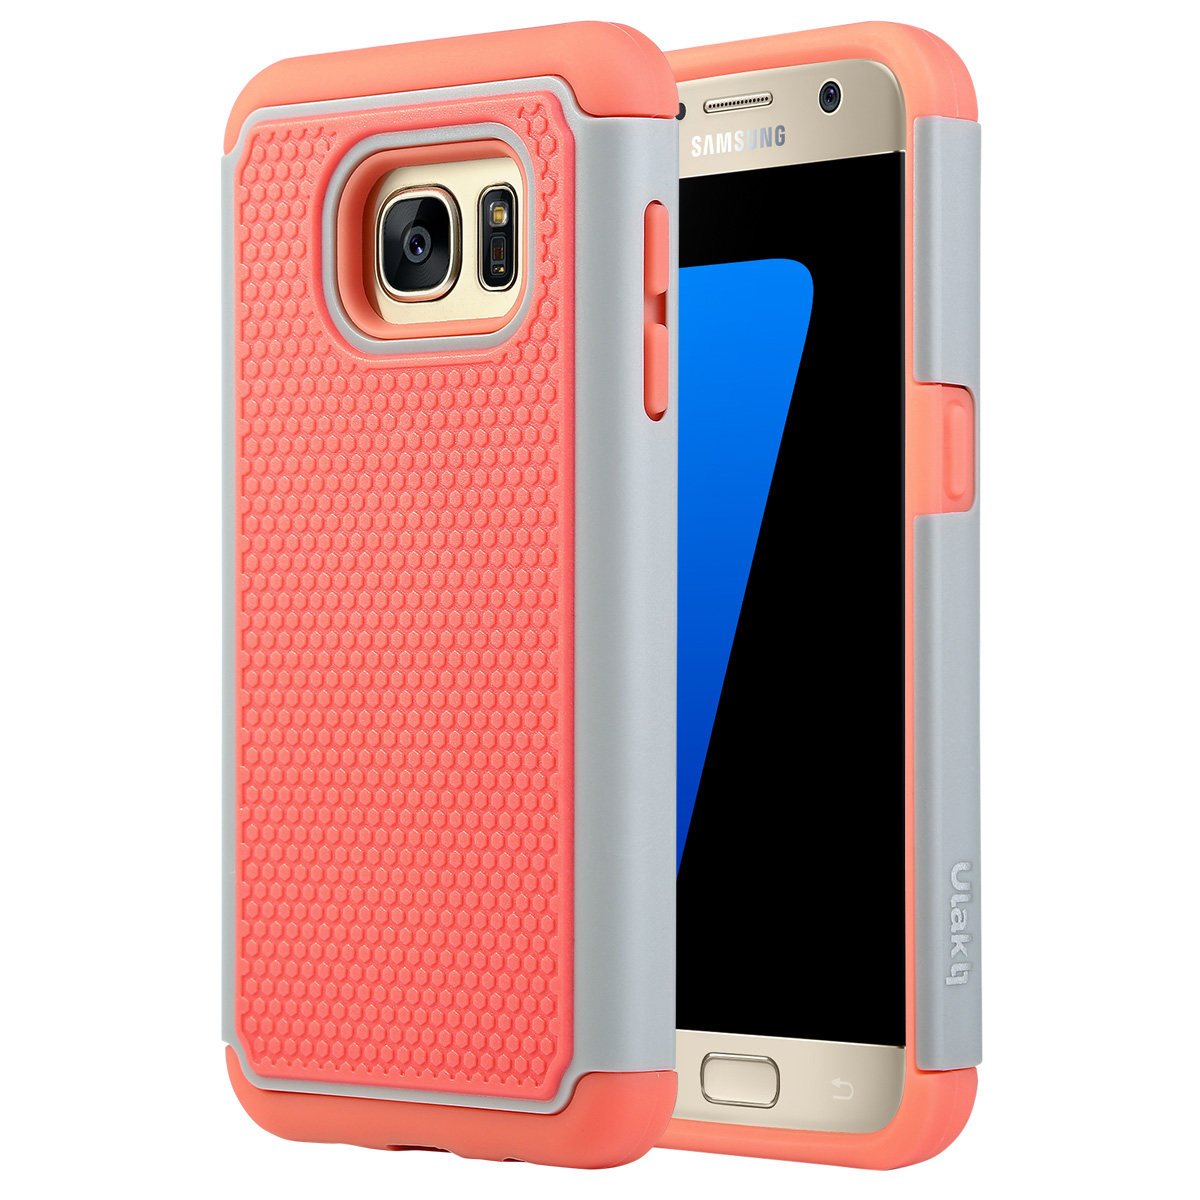 Galaxy S7 Case, ULAK Hybrid Slim Dual Layer Protective Case Cover with Soft Silicone and Hard PC ...